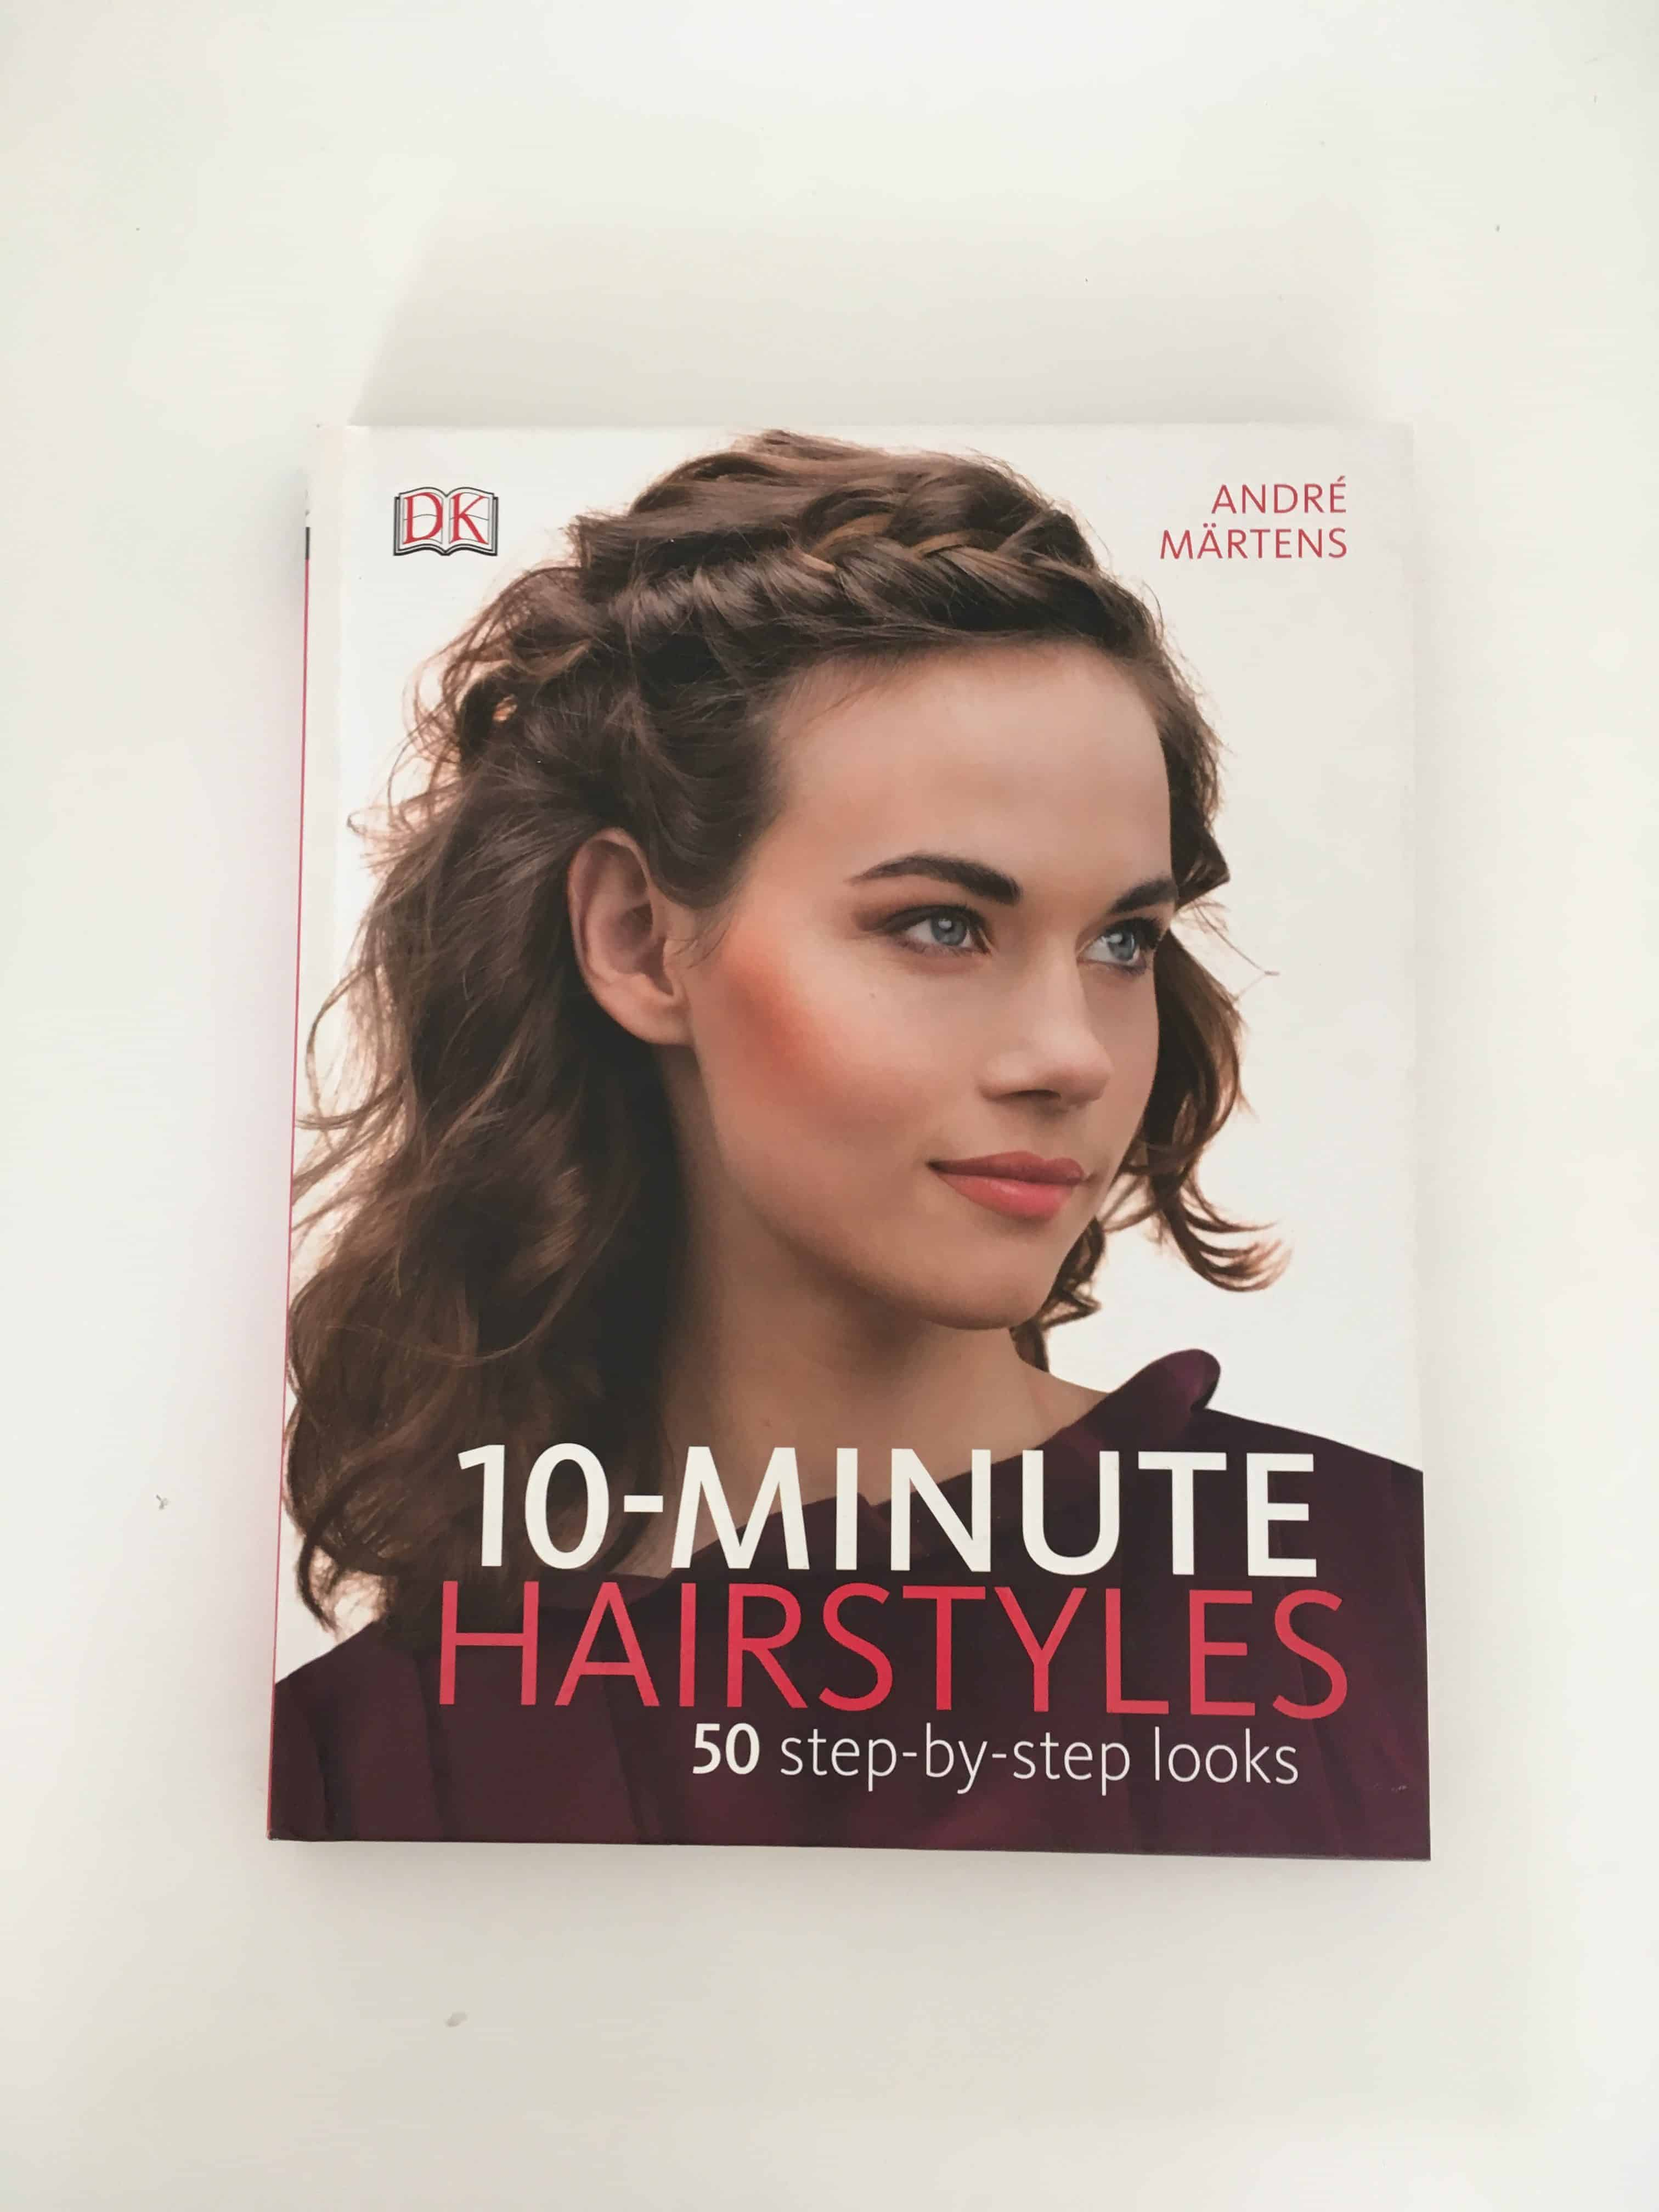 10 Minute Hairstyles -Andre Martens